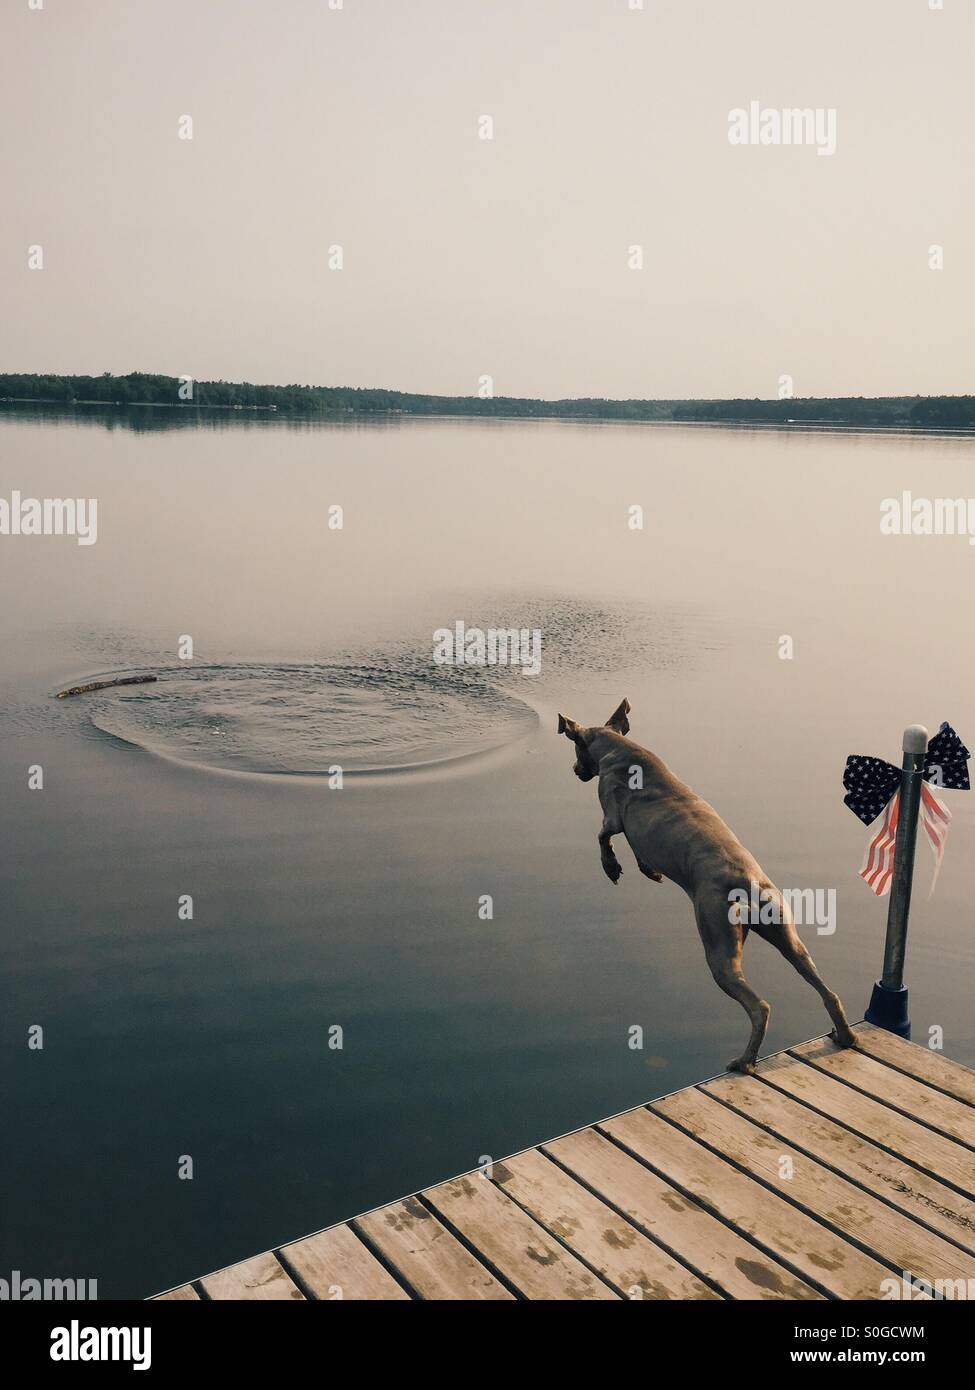 Dog jumping in lake to fetch a stick - Stock Image